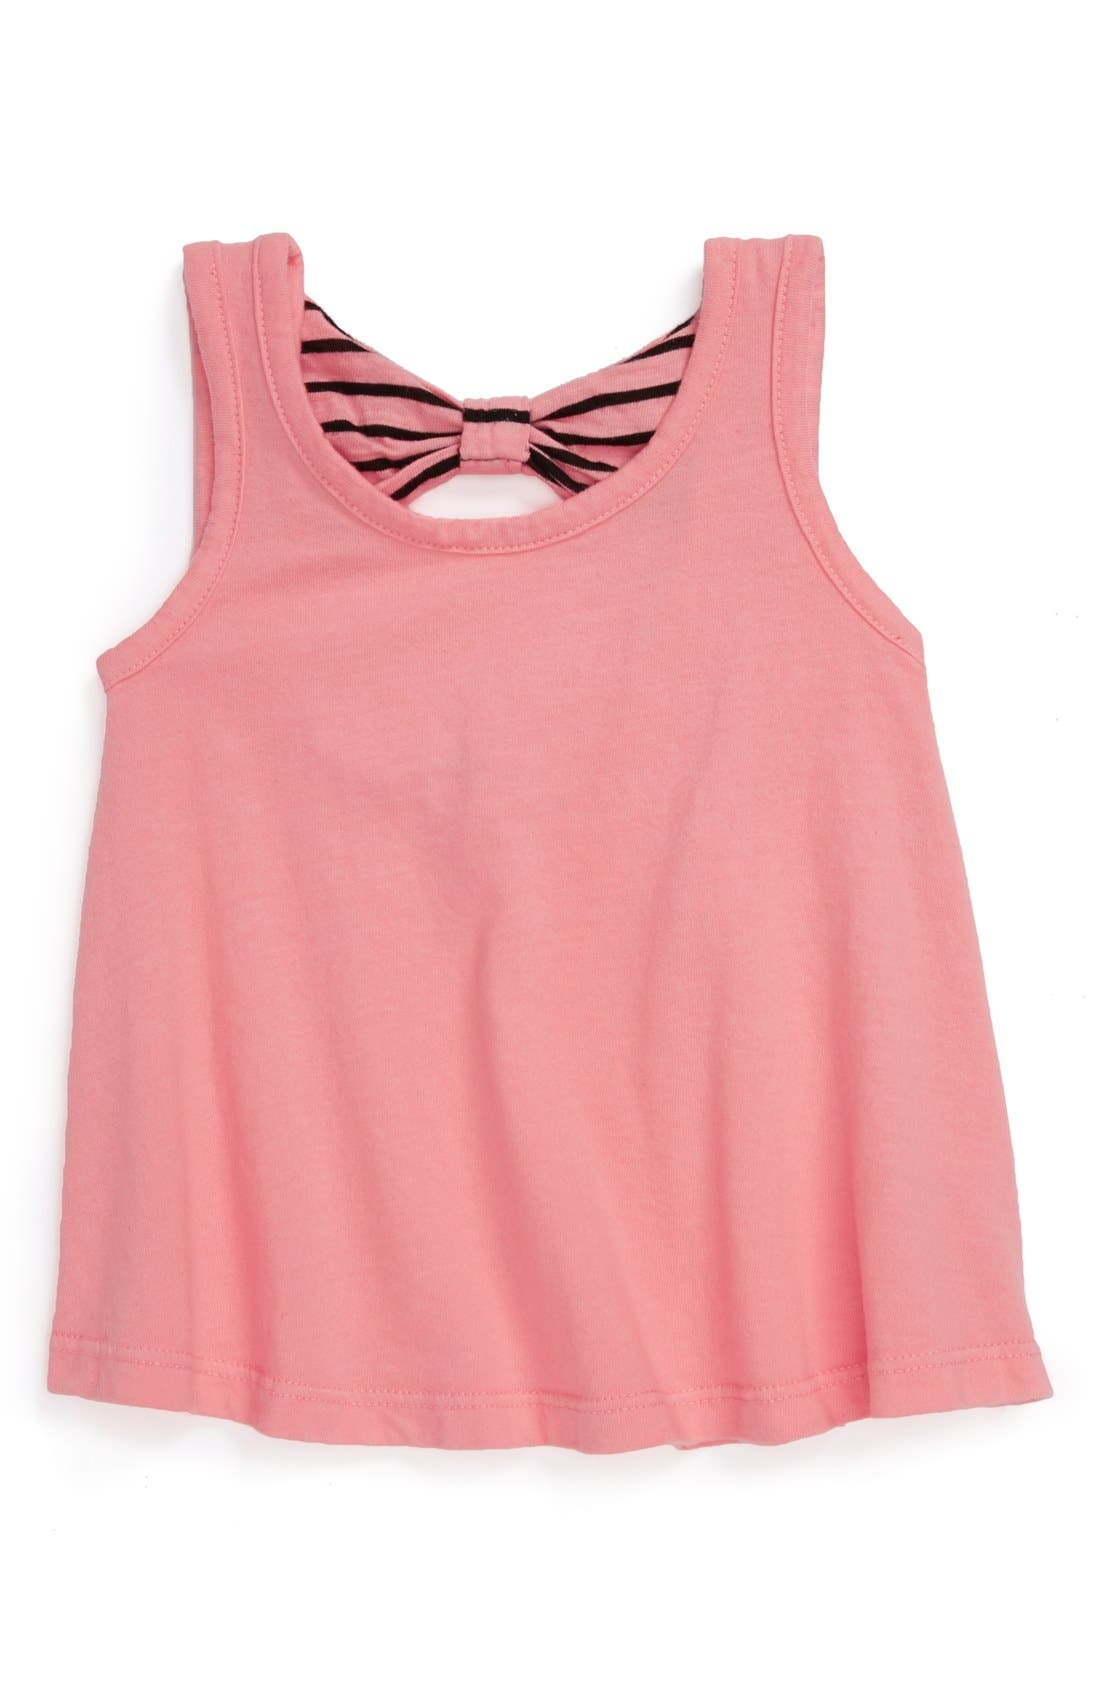 Alternate Image 1 Selected - Joah Love 'Bow' Tank Top (Baby Girls)